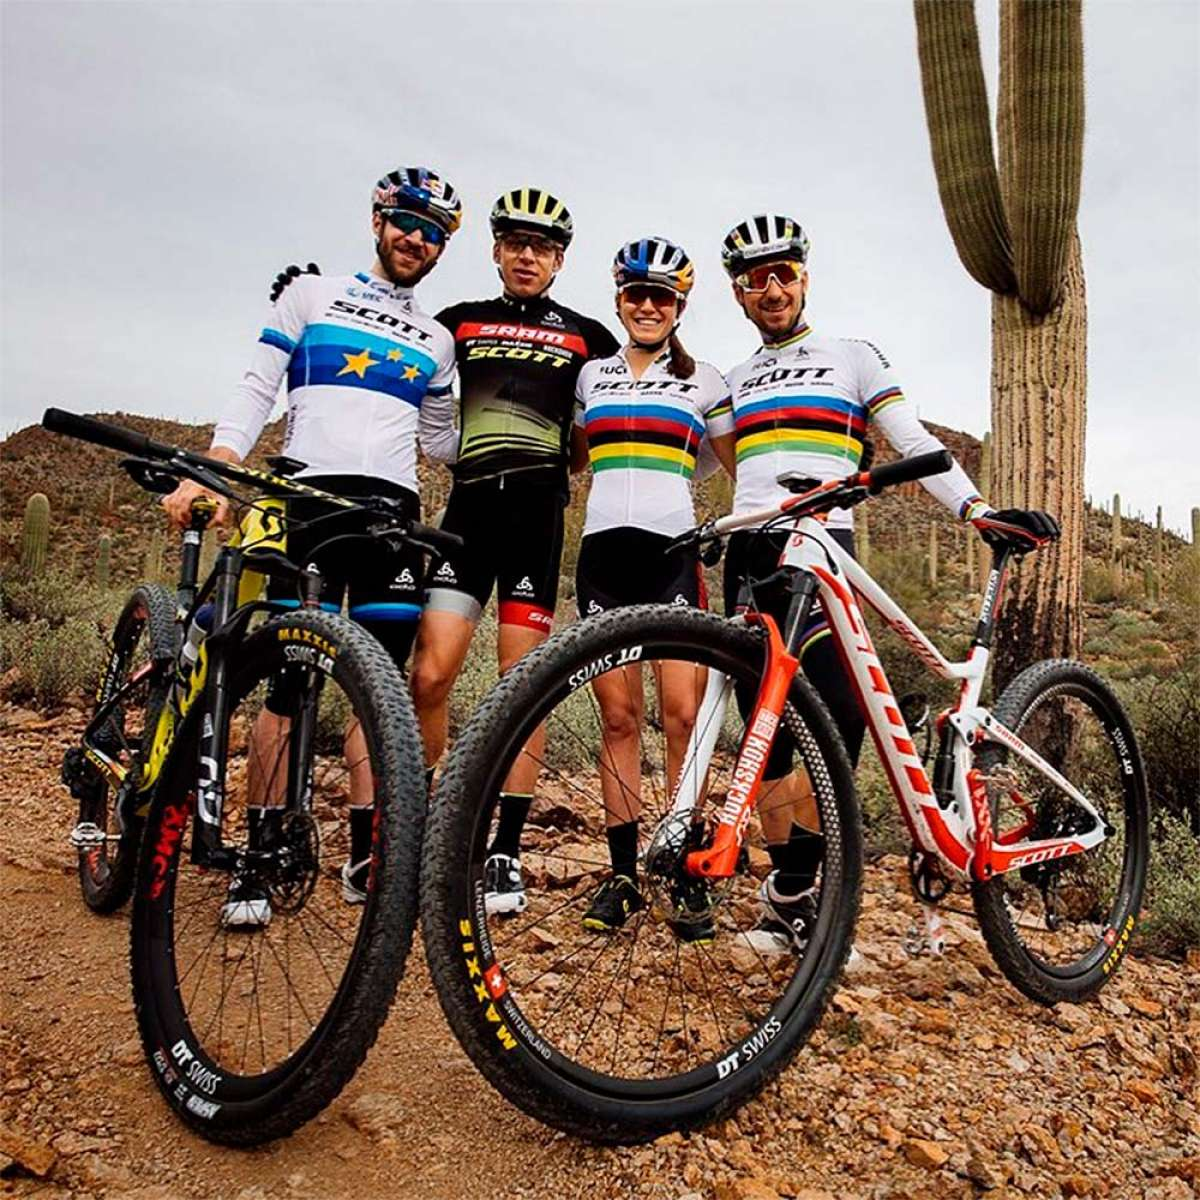 Primera imagen del SCOTT-SRAM MTB Racing al completo, el 'dream team' del XCO